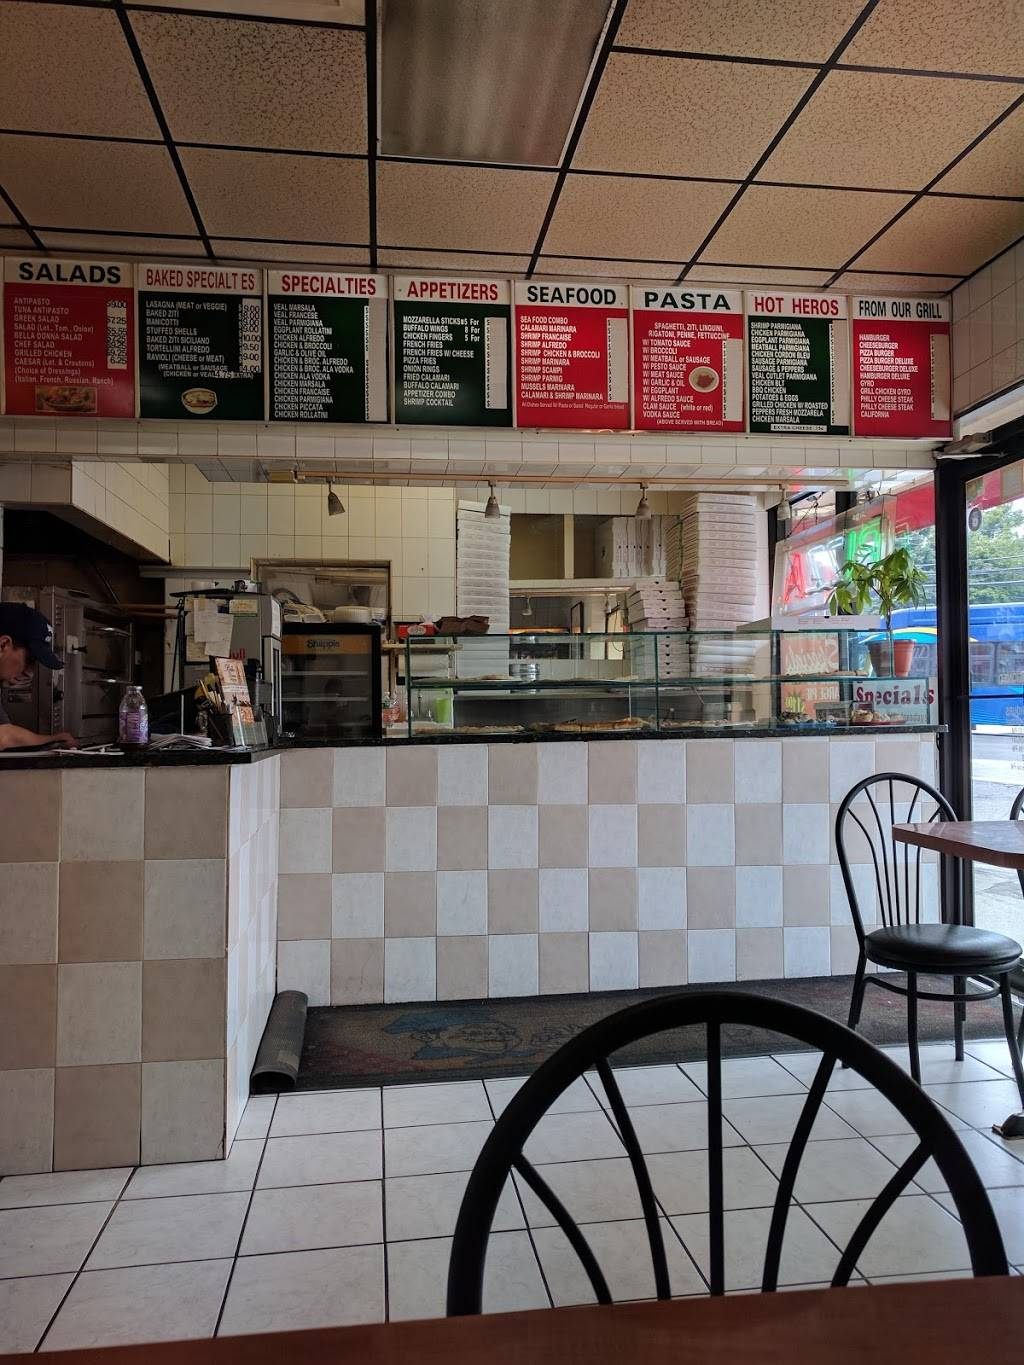 Bella Donna Pizzeria   meal delivery   3358, 6091 54th St, Flushing, NY 11378, USA   7184971744 OR +1 718-497-1744